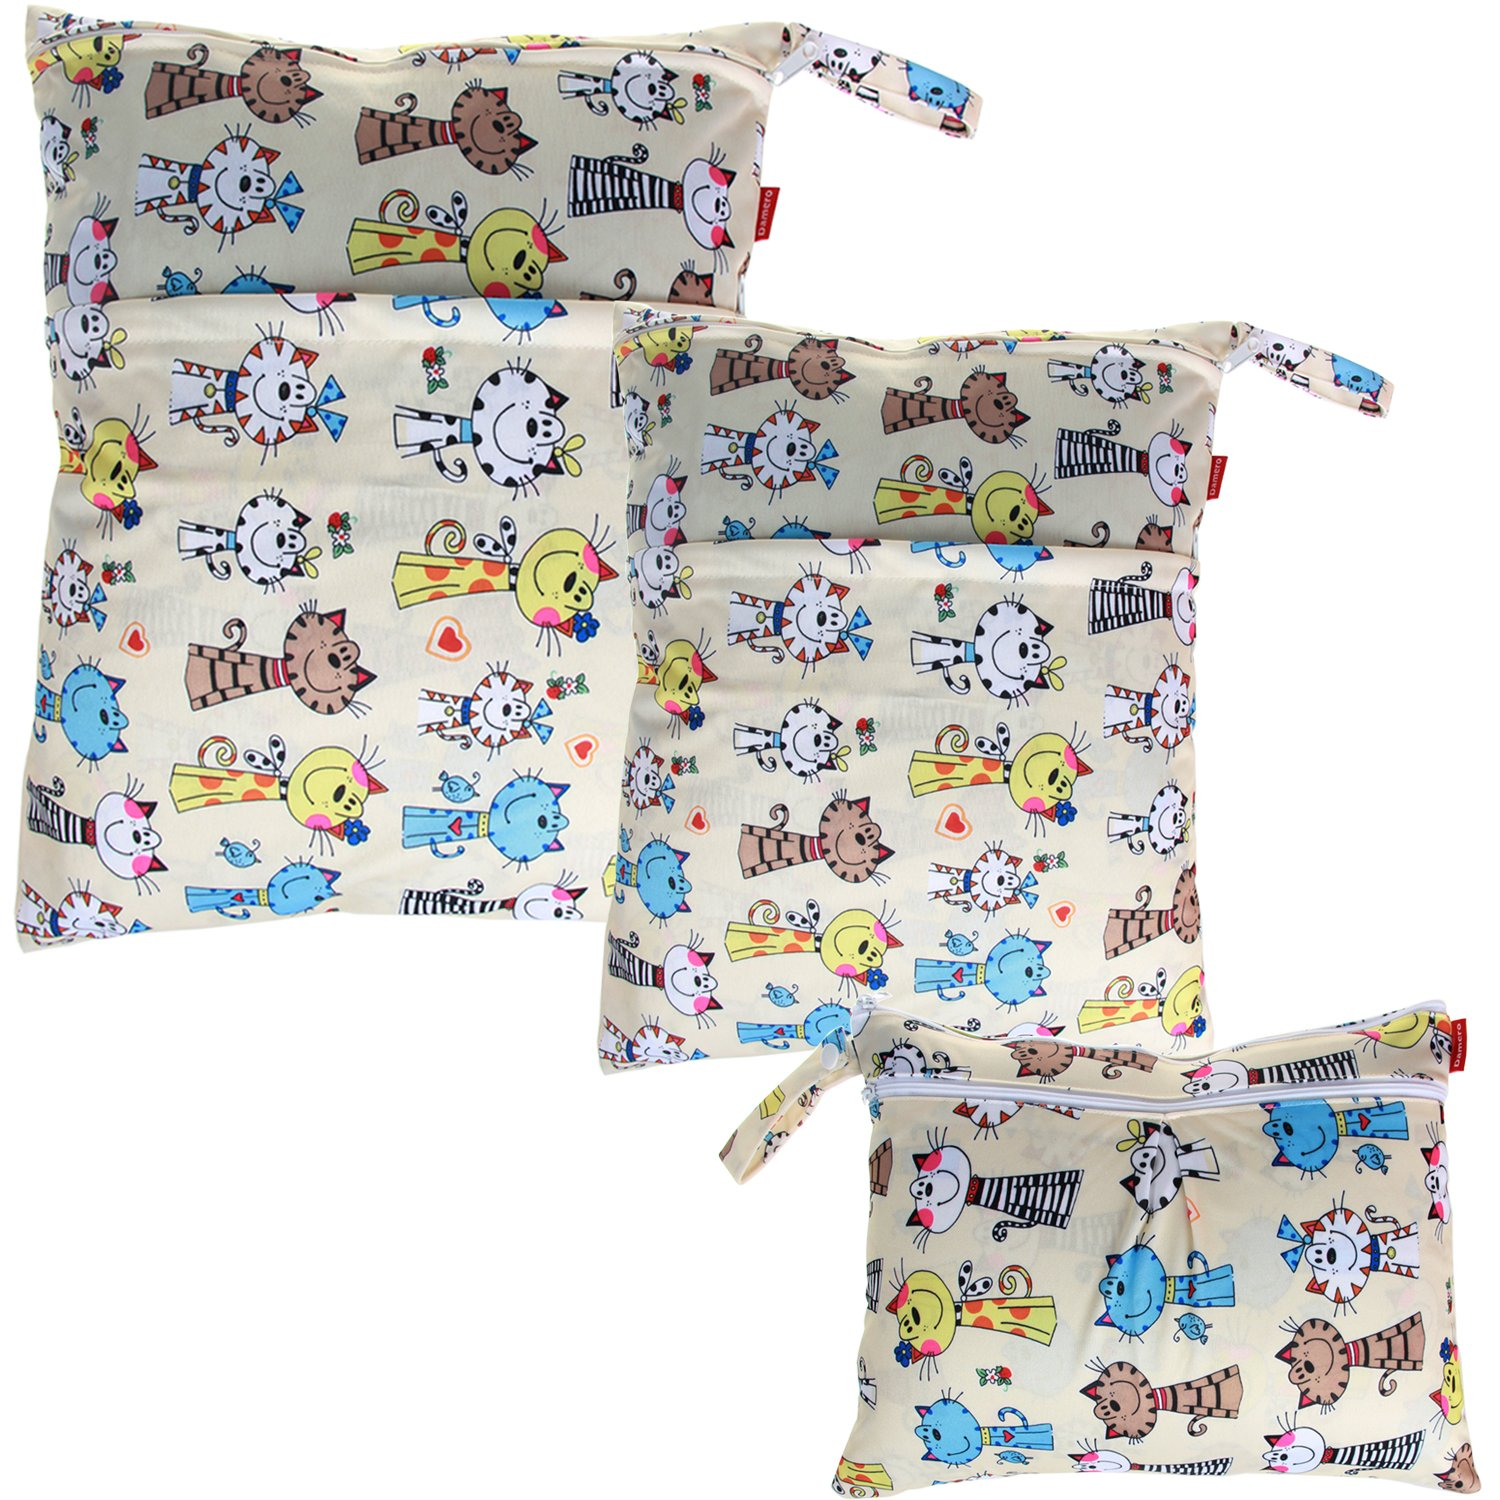 Damero 3pcs Pack Wet Dry Bag for Cloth Diapers Daycare Organizer Bag, Cats by Damero